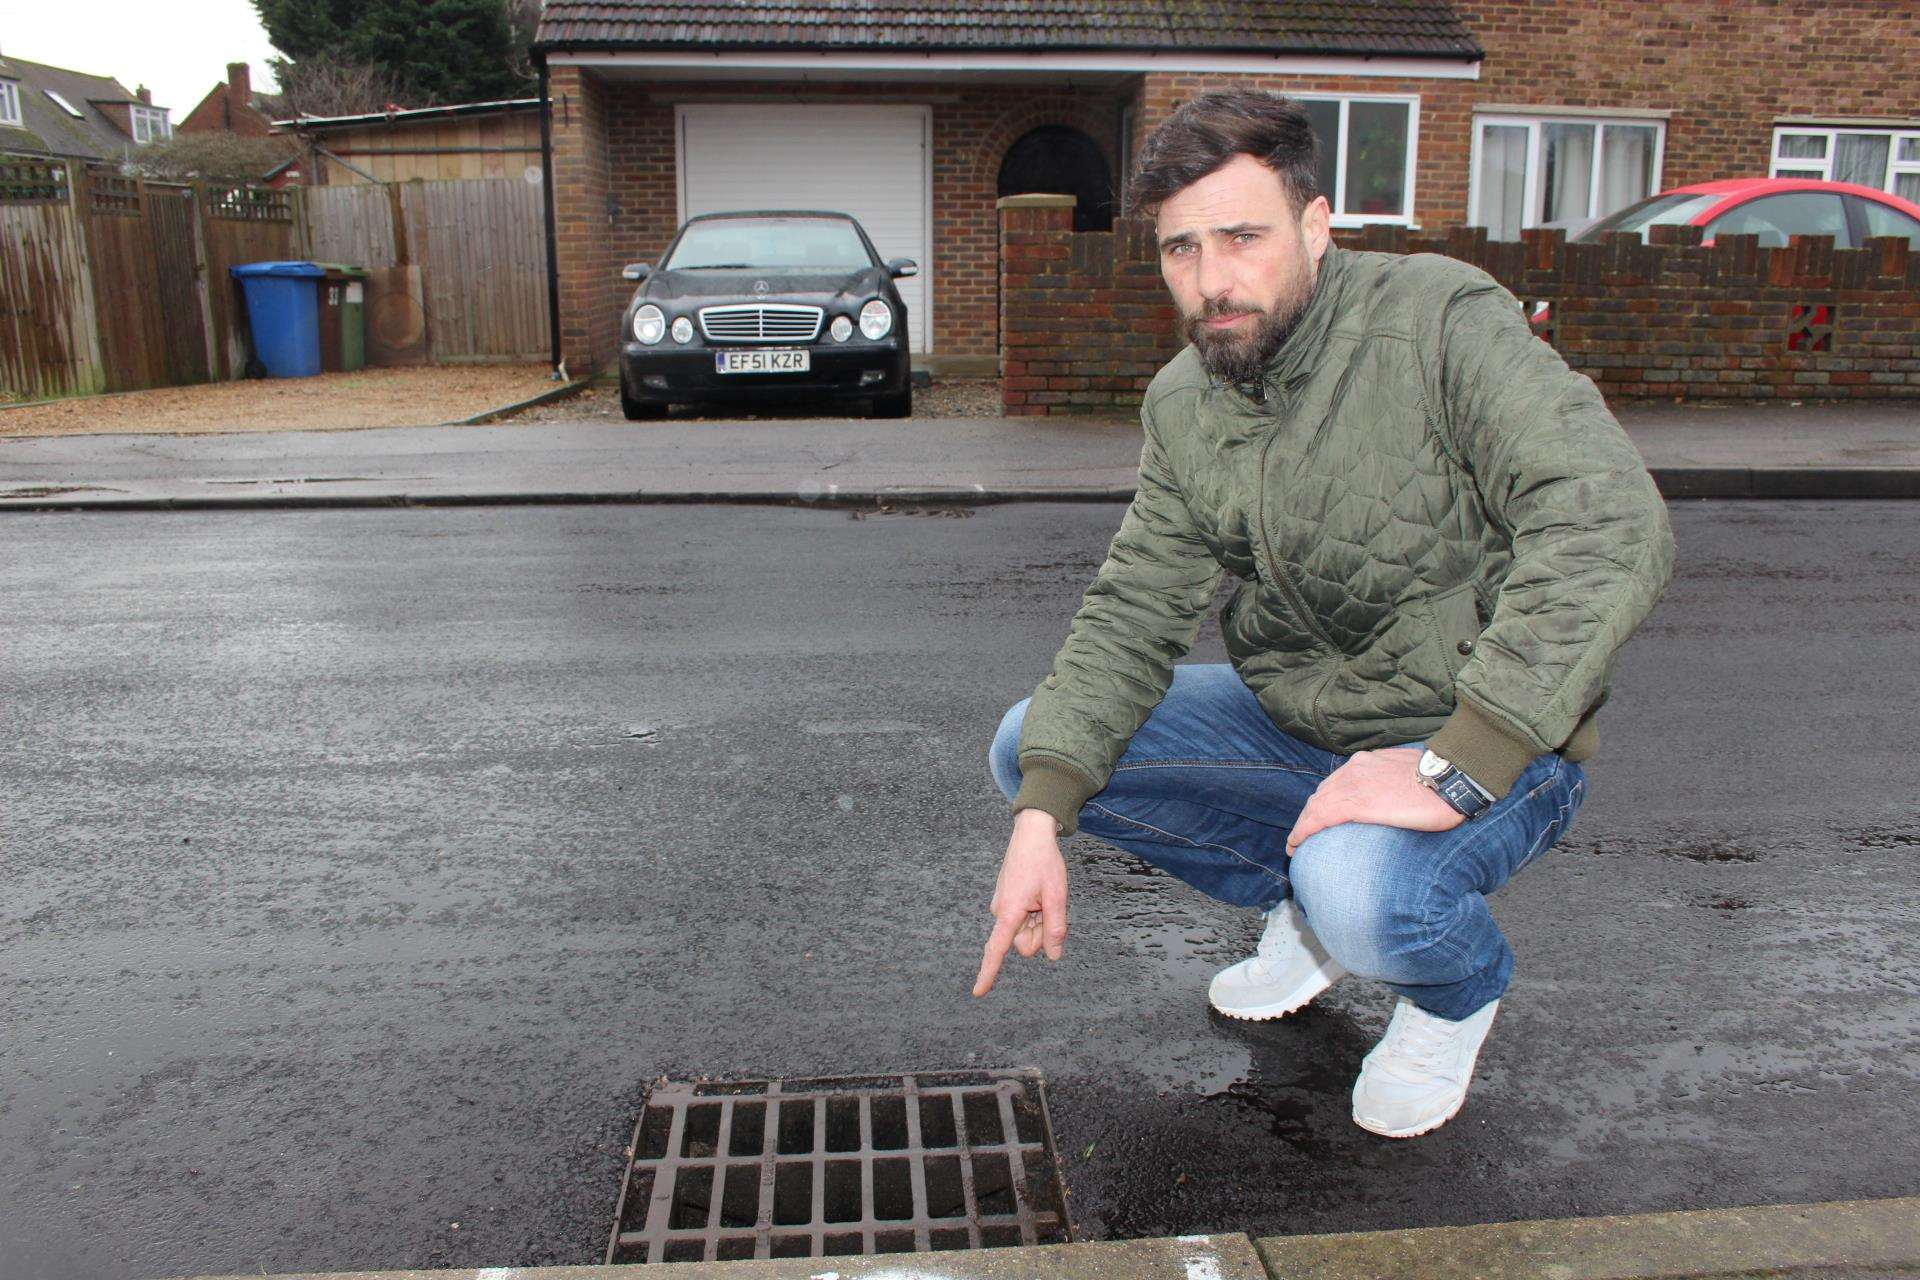 Sean Maxwell believes there may be a leak in one of the drains outside his home in Sheerstone, Iwade